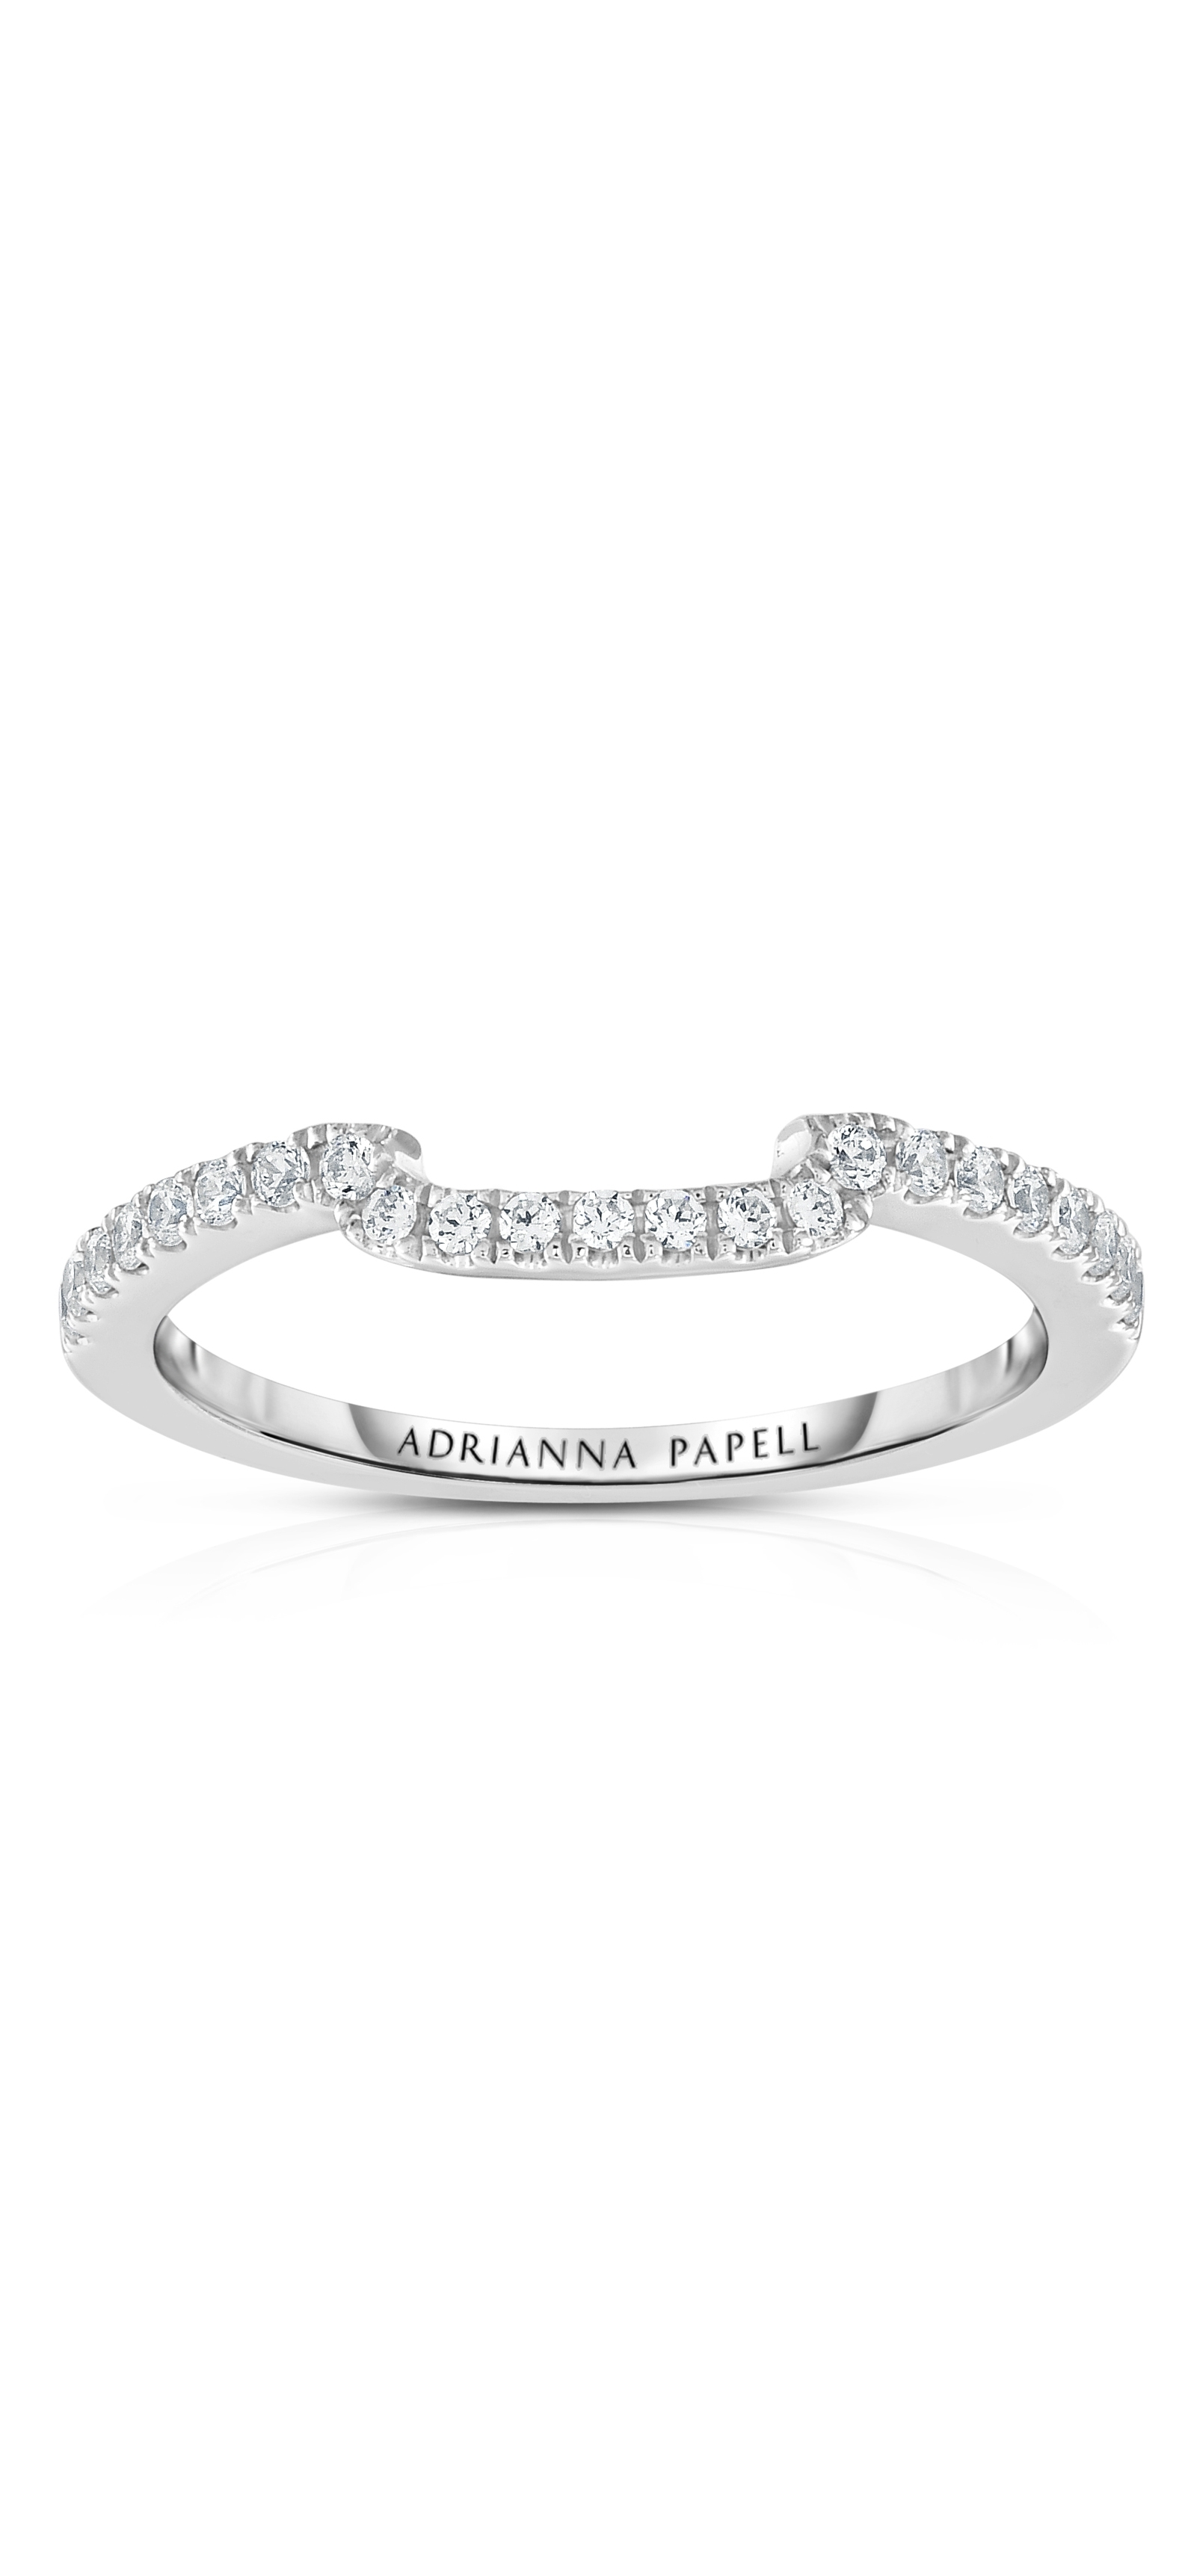 Diamond Contour Wedding Band In 14K White Gold | Adrianna Papell Inside 2018 Diamond Contour Wedding Bands In 14K White Gold (View 4 of 15)